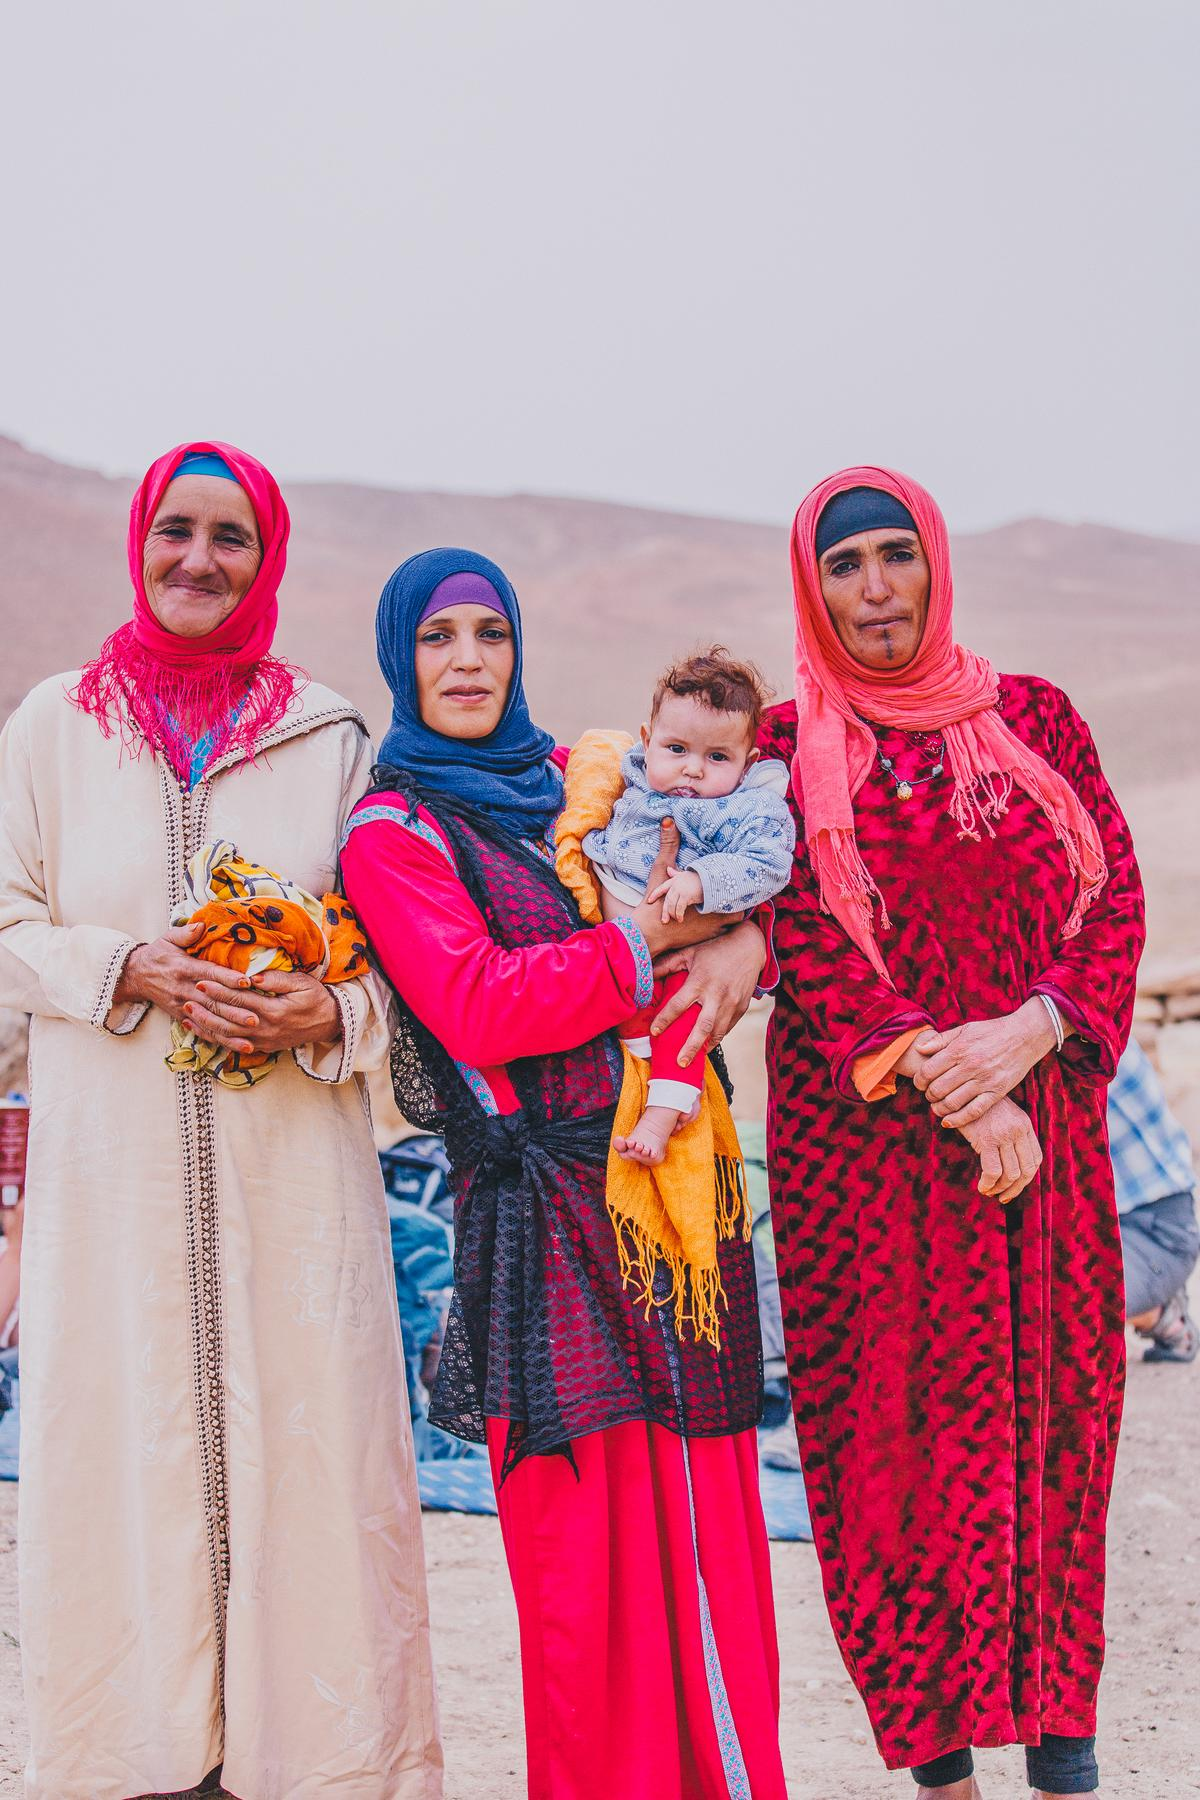 How Intrepid Travel Is Shaping Gender Roles in Morocco